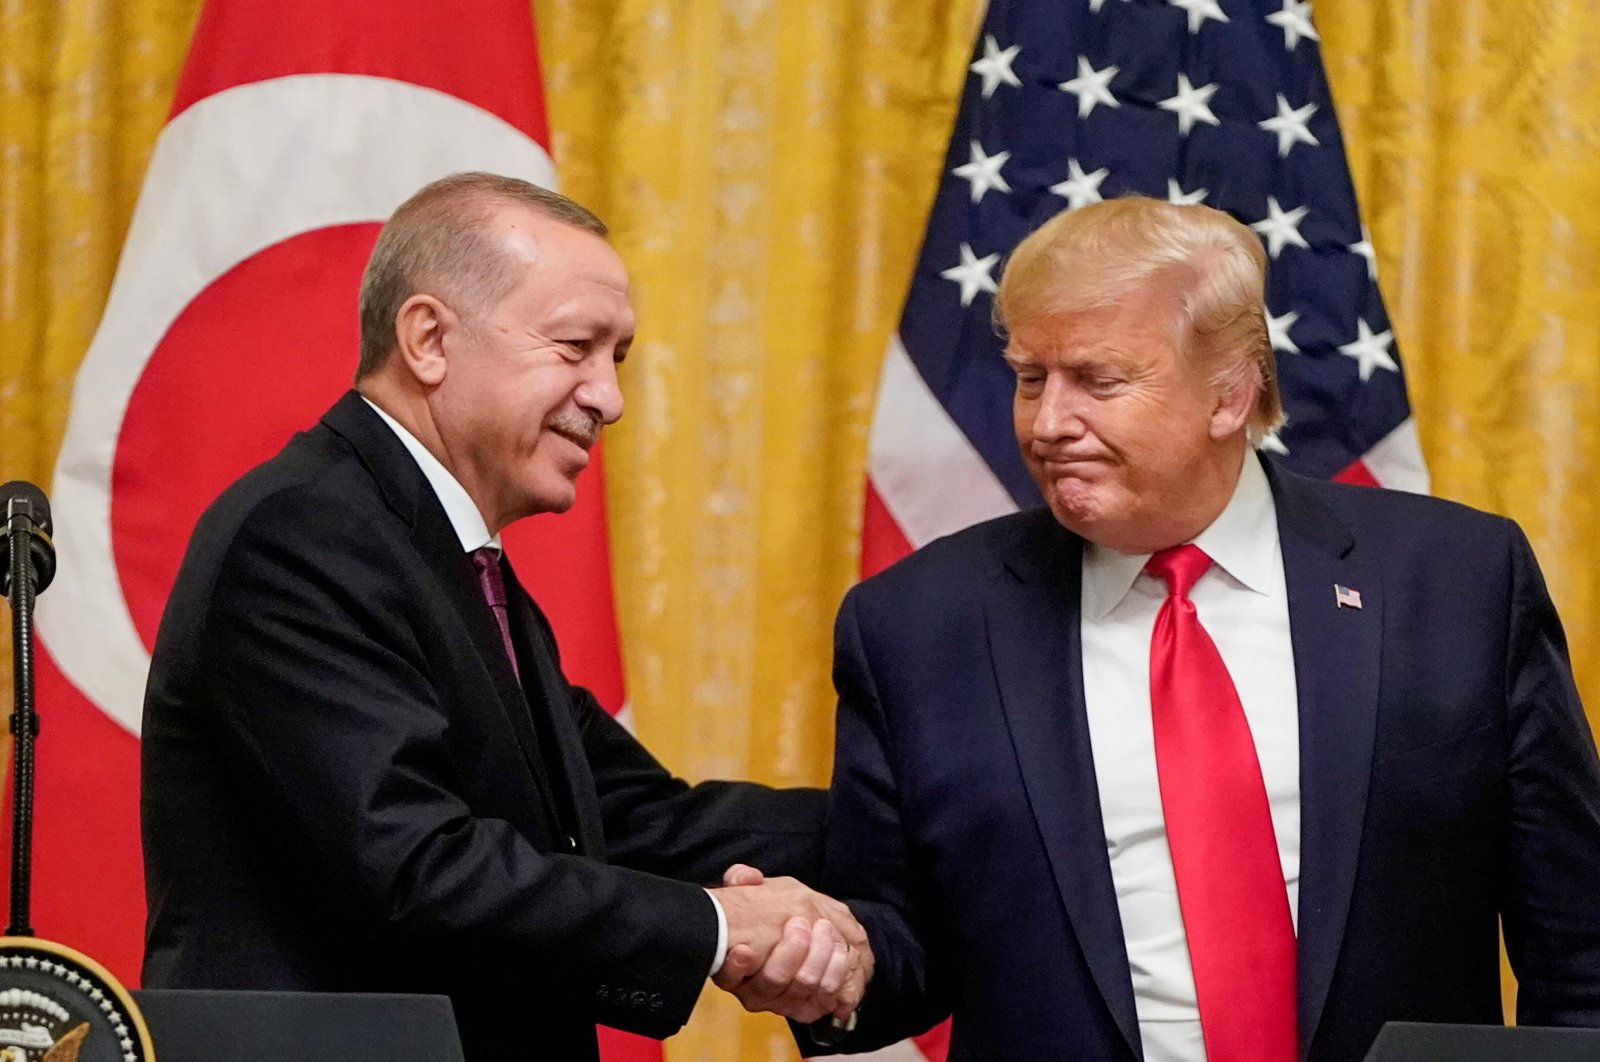 U.S. President Donald Trump greets Turkey's President Recep Tayyip Erdoğan during a joint news conference at the White House in Washington, D.C., U.S., Nov. 13, 2019. (Reuters Photo)